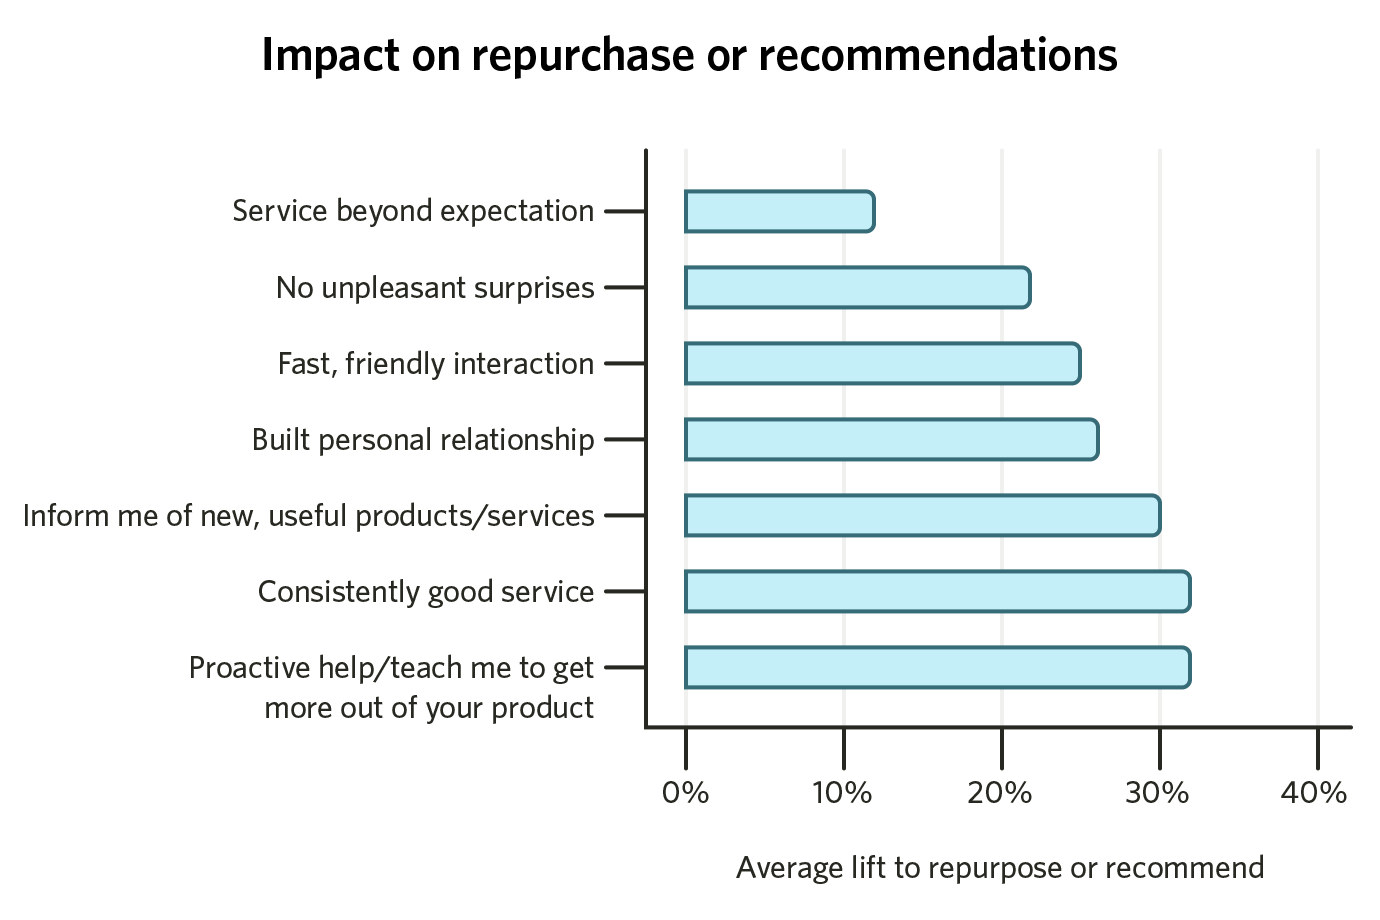 impact on repurchase or reccomendations